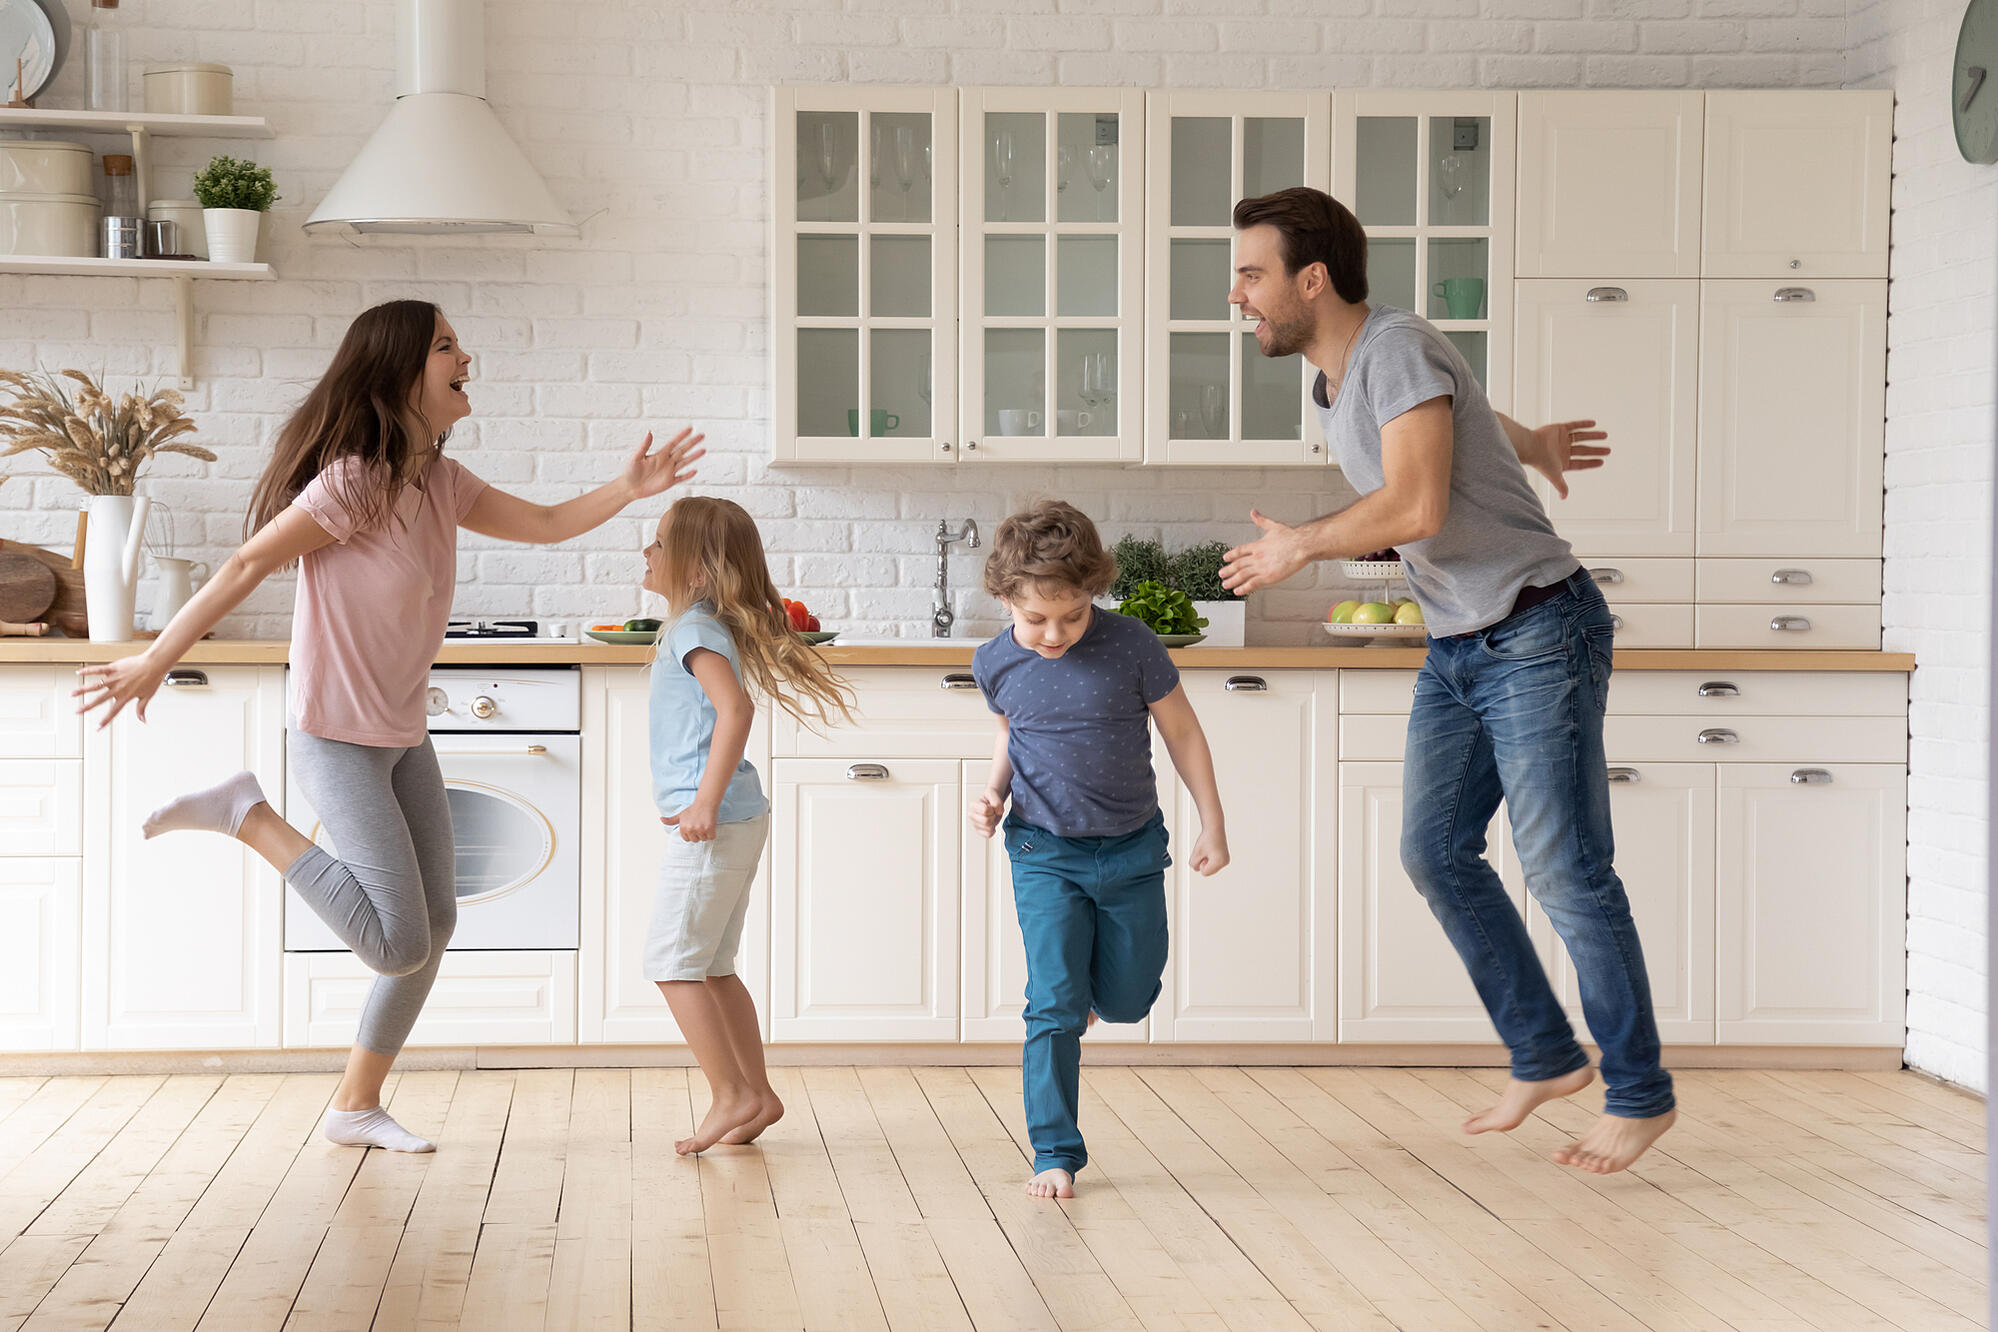 Overjoyed young family dancing with little kids at home